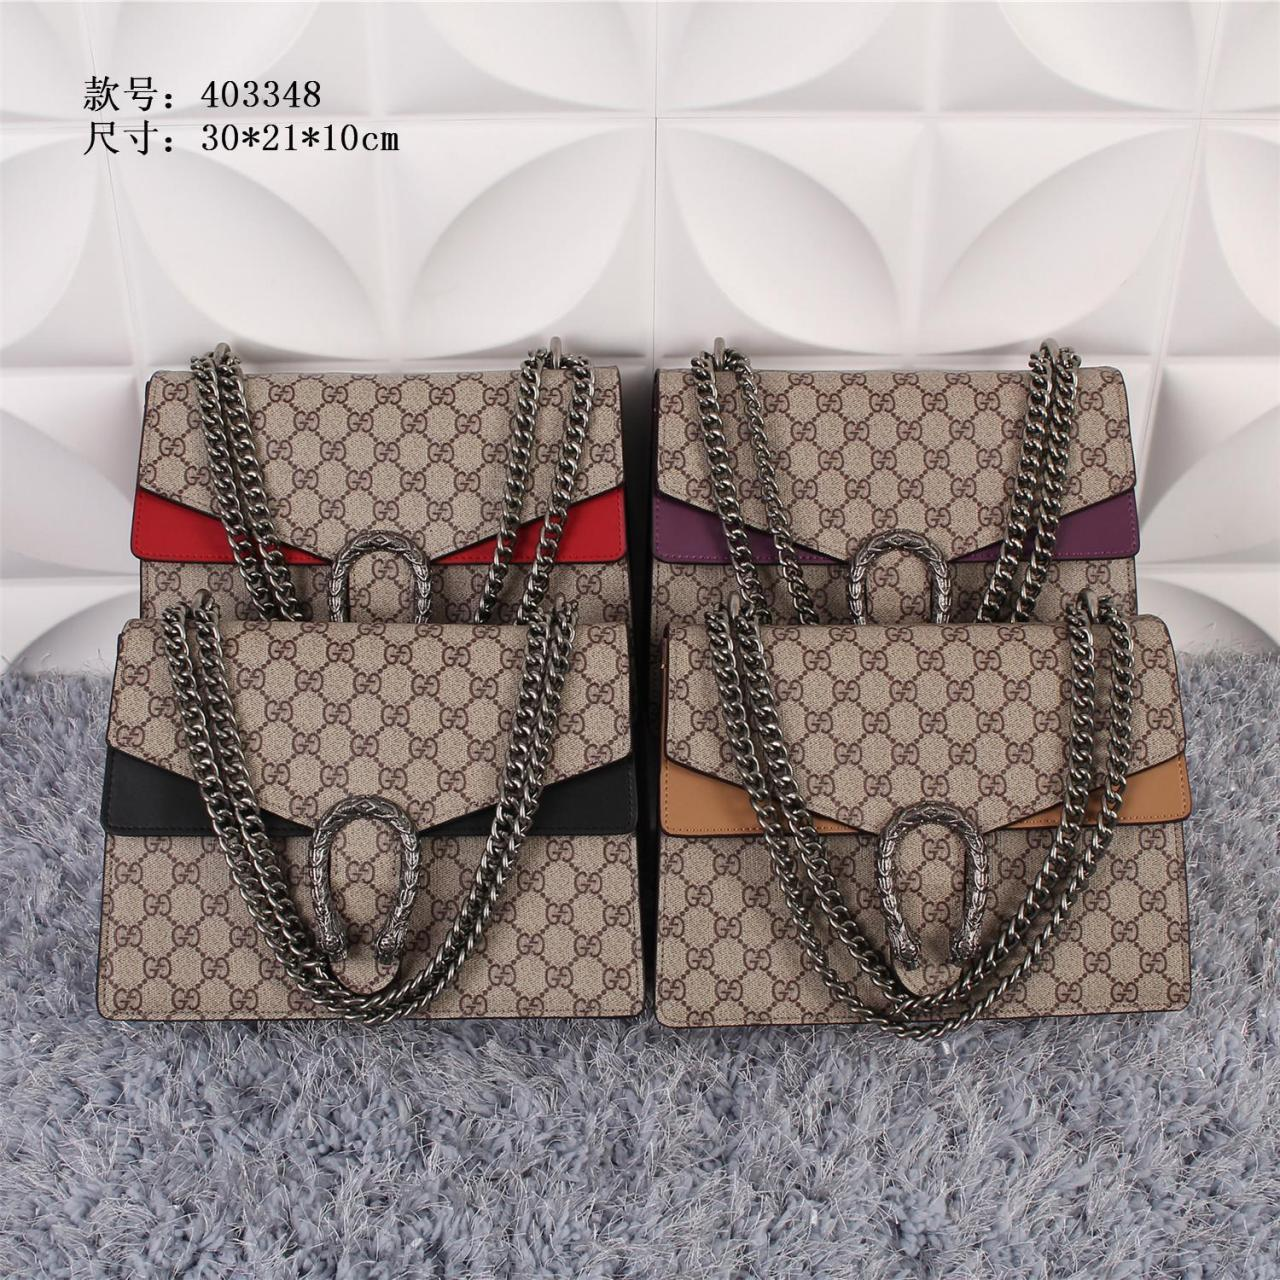 Buy cheap Newest cheap Gucci handbags wholesale handbags purses wallets from wholesalers